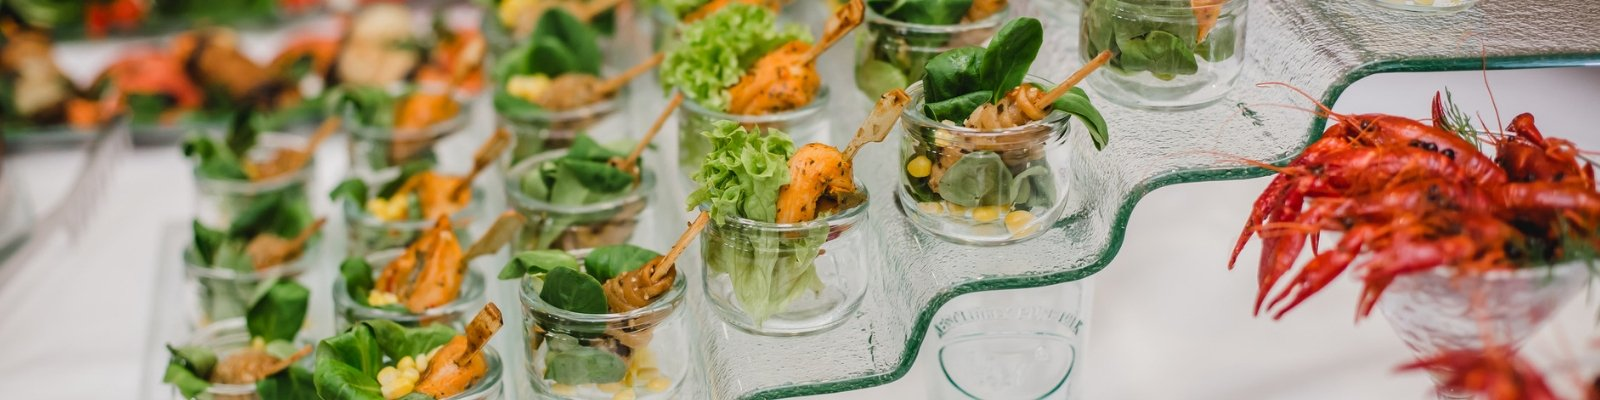 fresh & joy events - Salate im Glas in Hannover